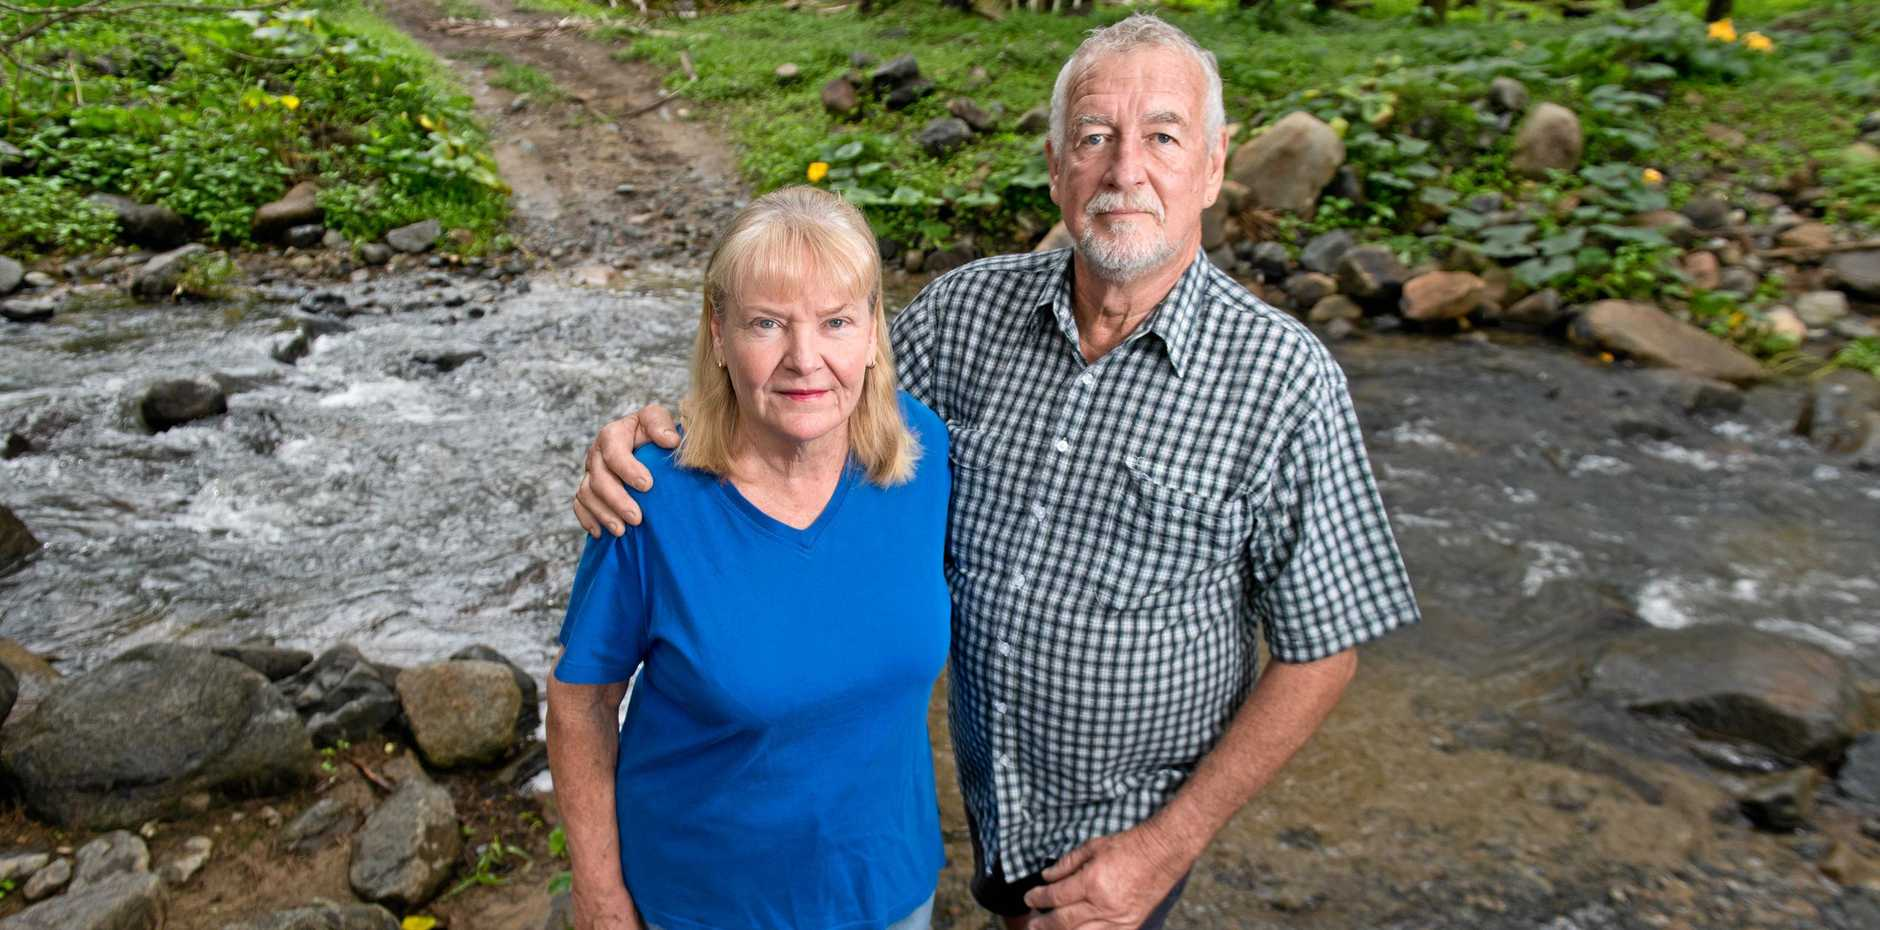 Netherdale residents Win and James Arnold say they are fed up with finding mango waste in a creek that runs through their property.